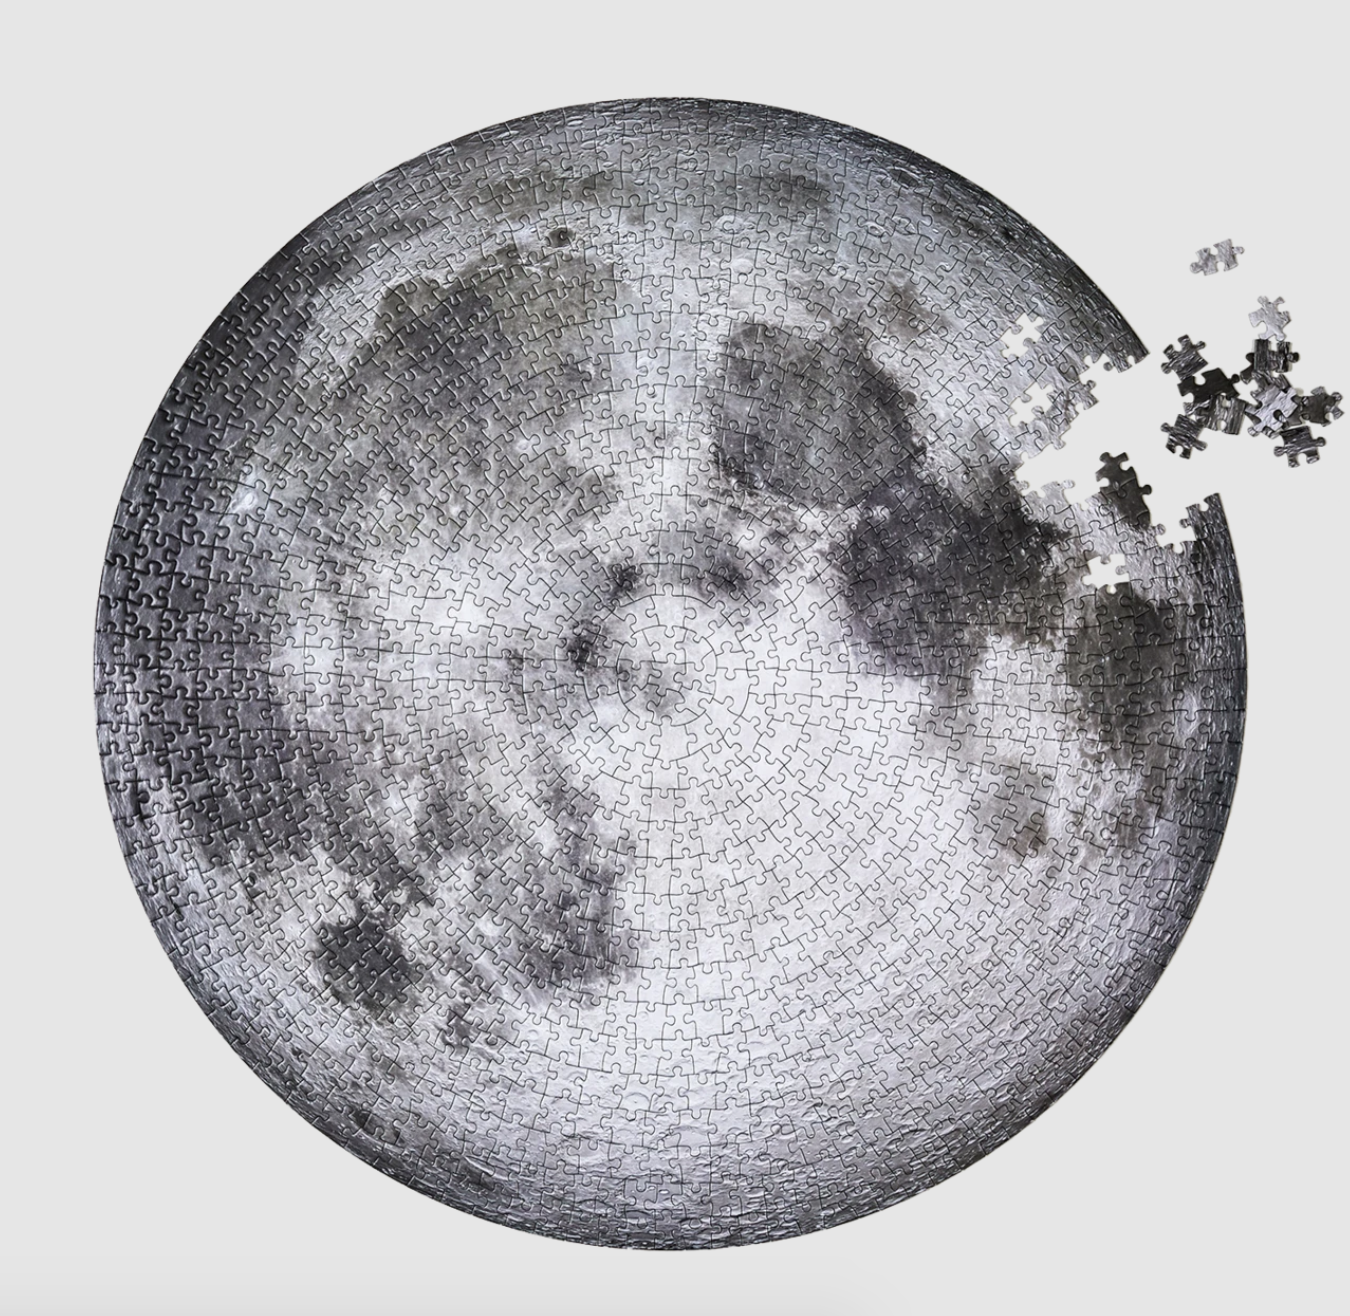 a circular black and white puzzle of the moon